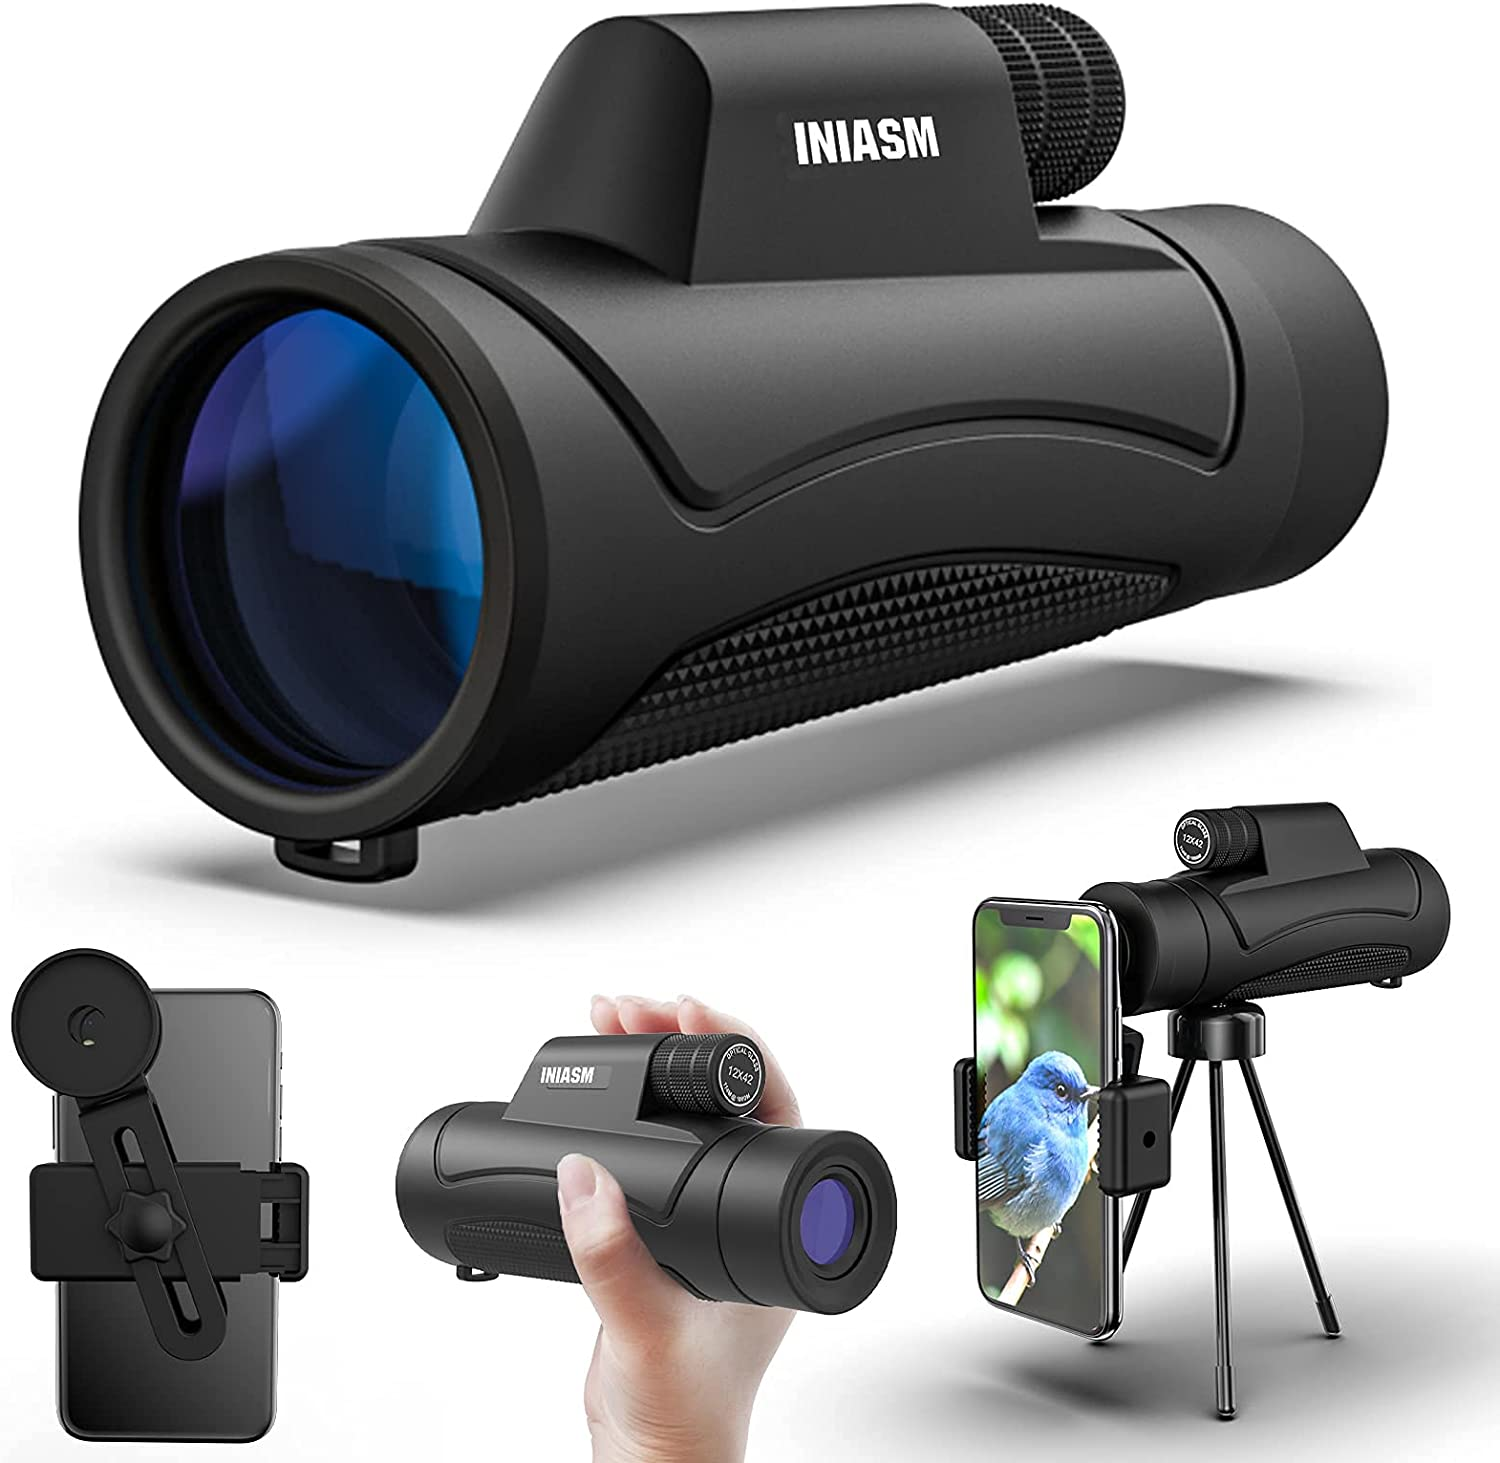 Monocular Telescope for Ranking integrated 1st place San Jose Mall Adults S Iniasm